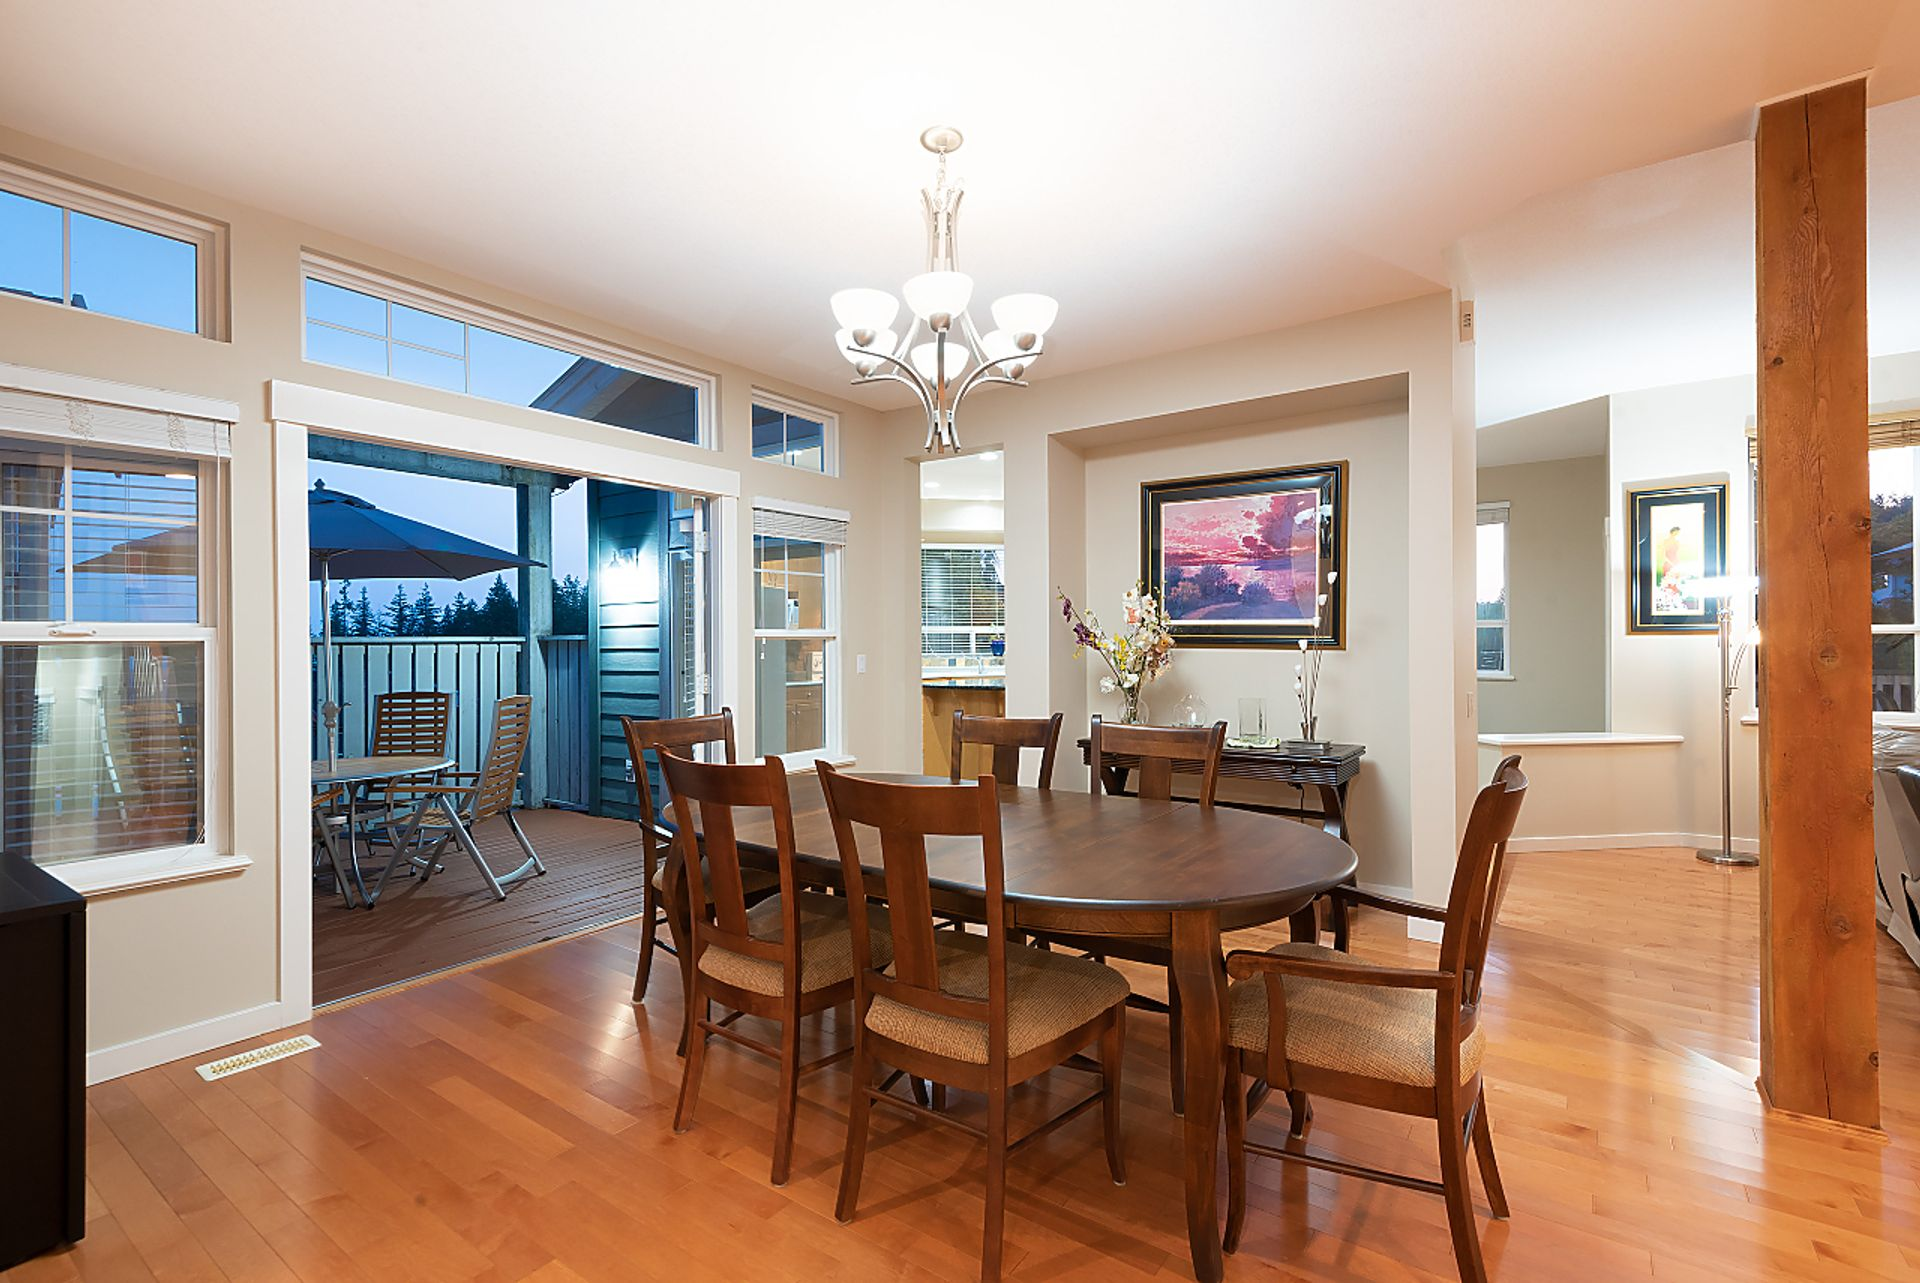 023 at 11 Cliffwood Drive, Heritage Woods PM, Port Moody